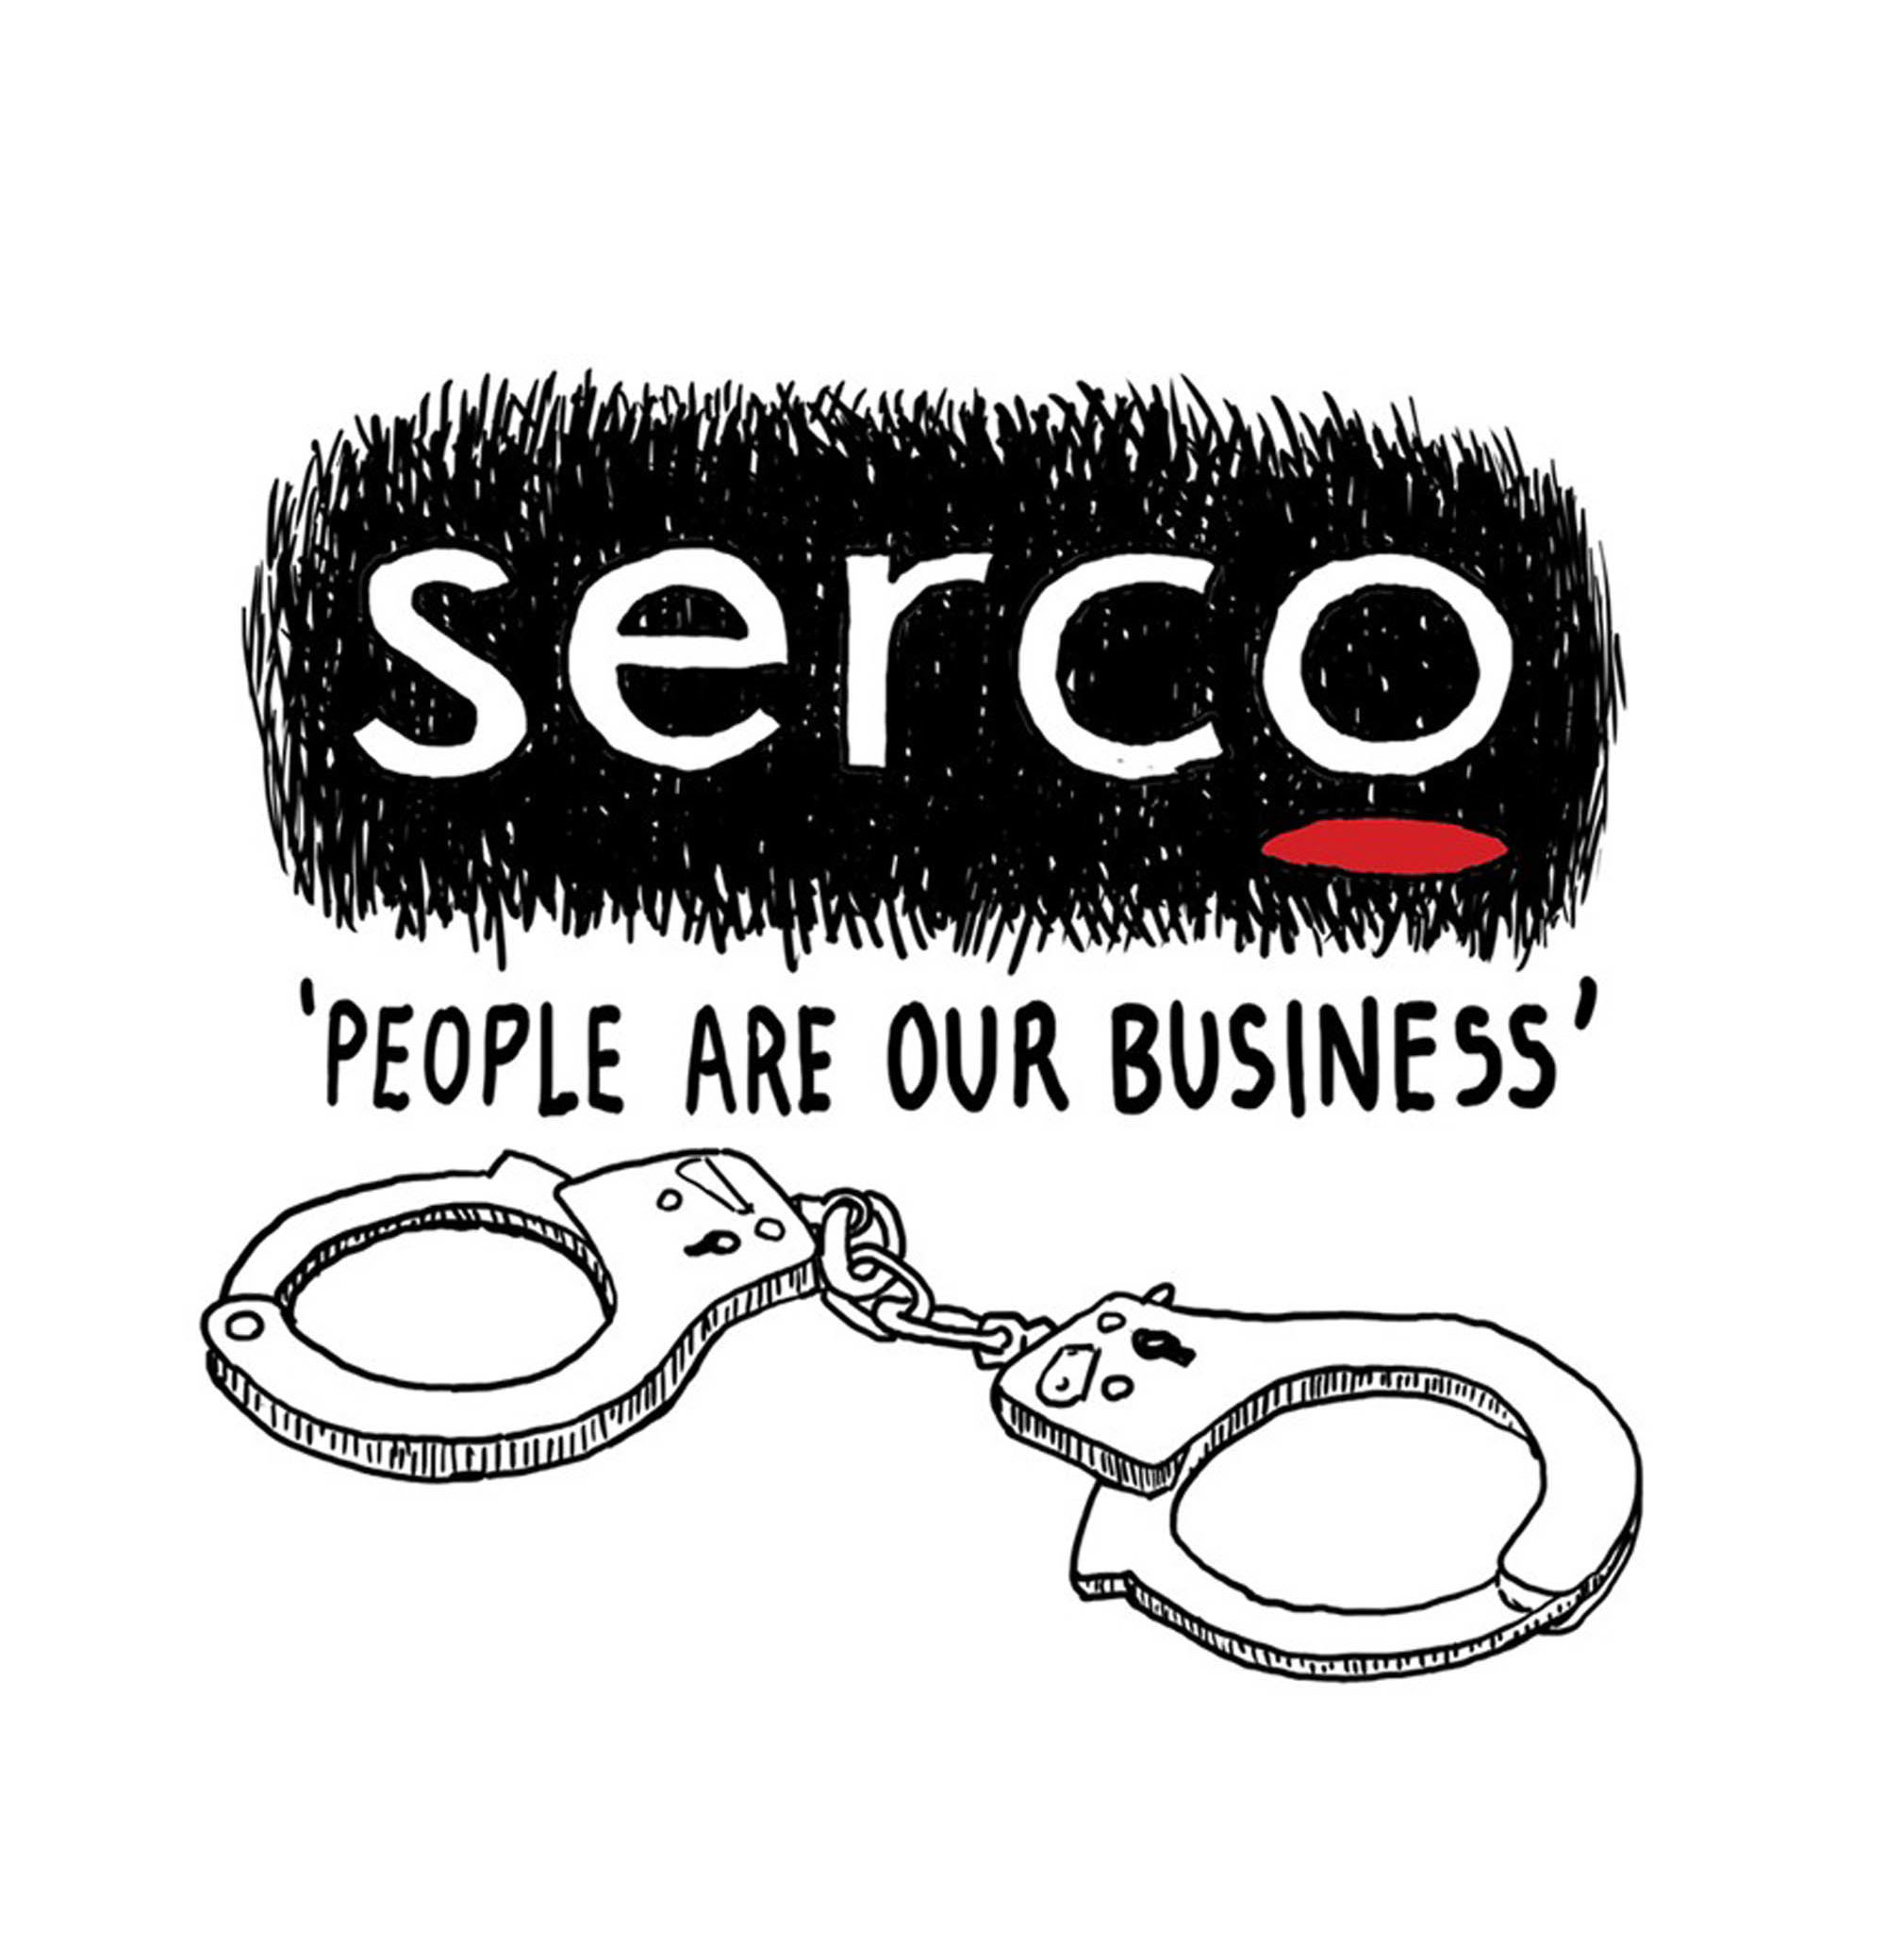 An illustrated version of the Serco logo is depicted with the slogan 'People are our business'. Below are a pair of handcuffs.